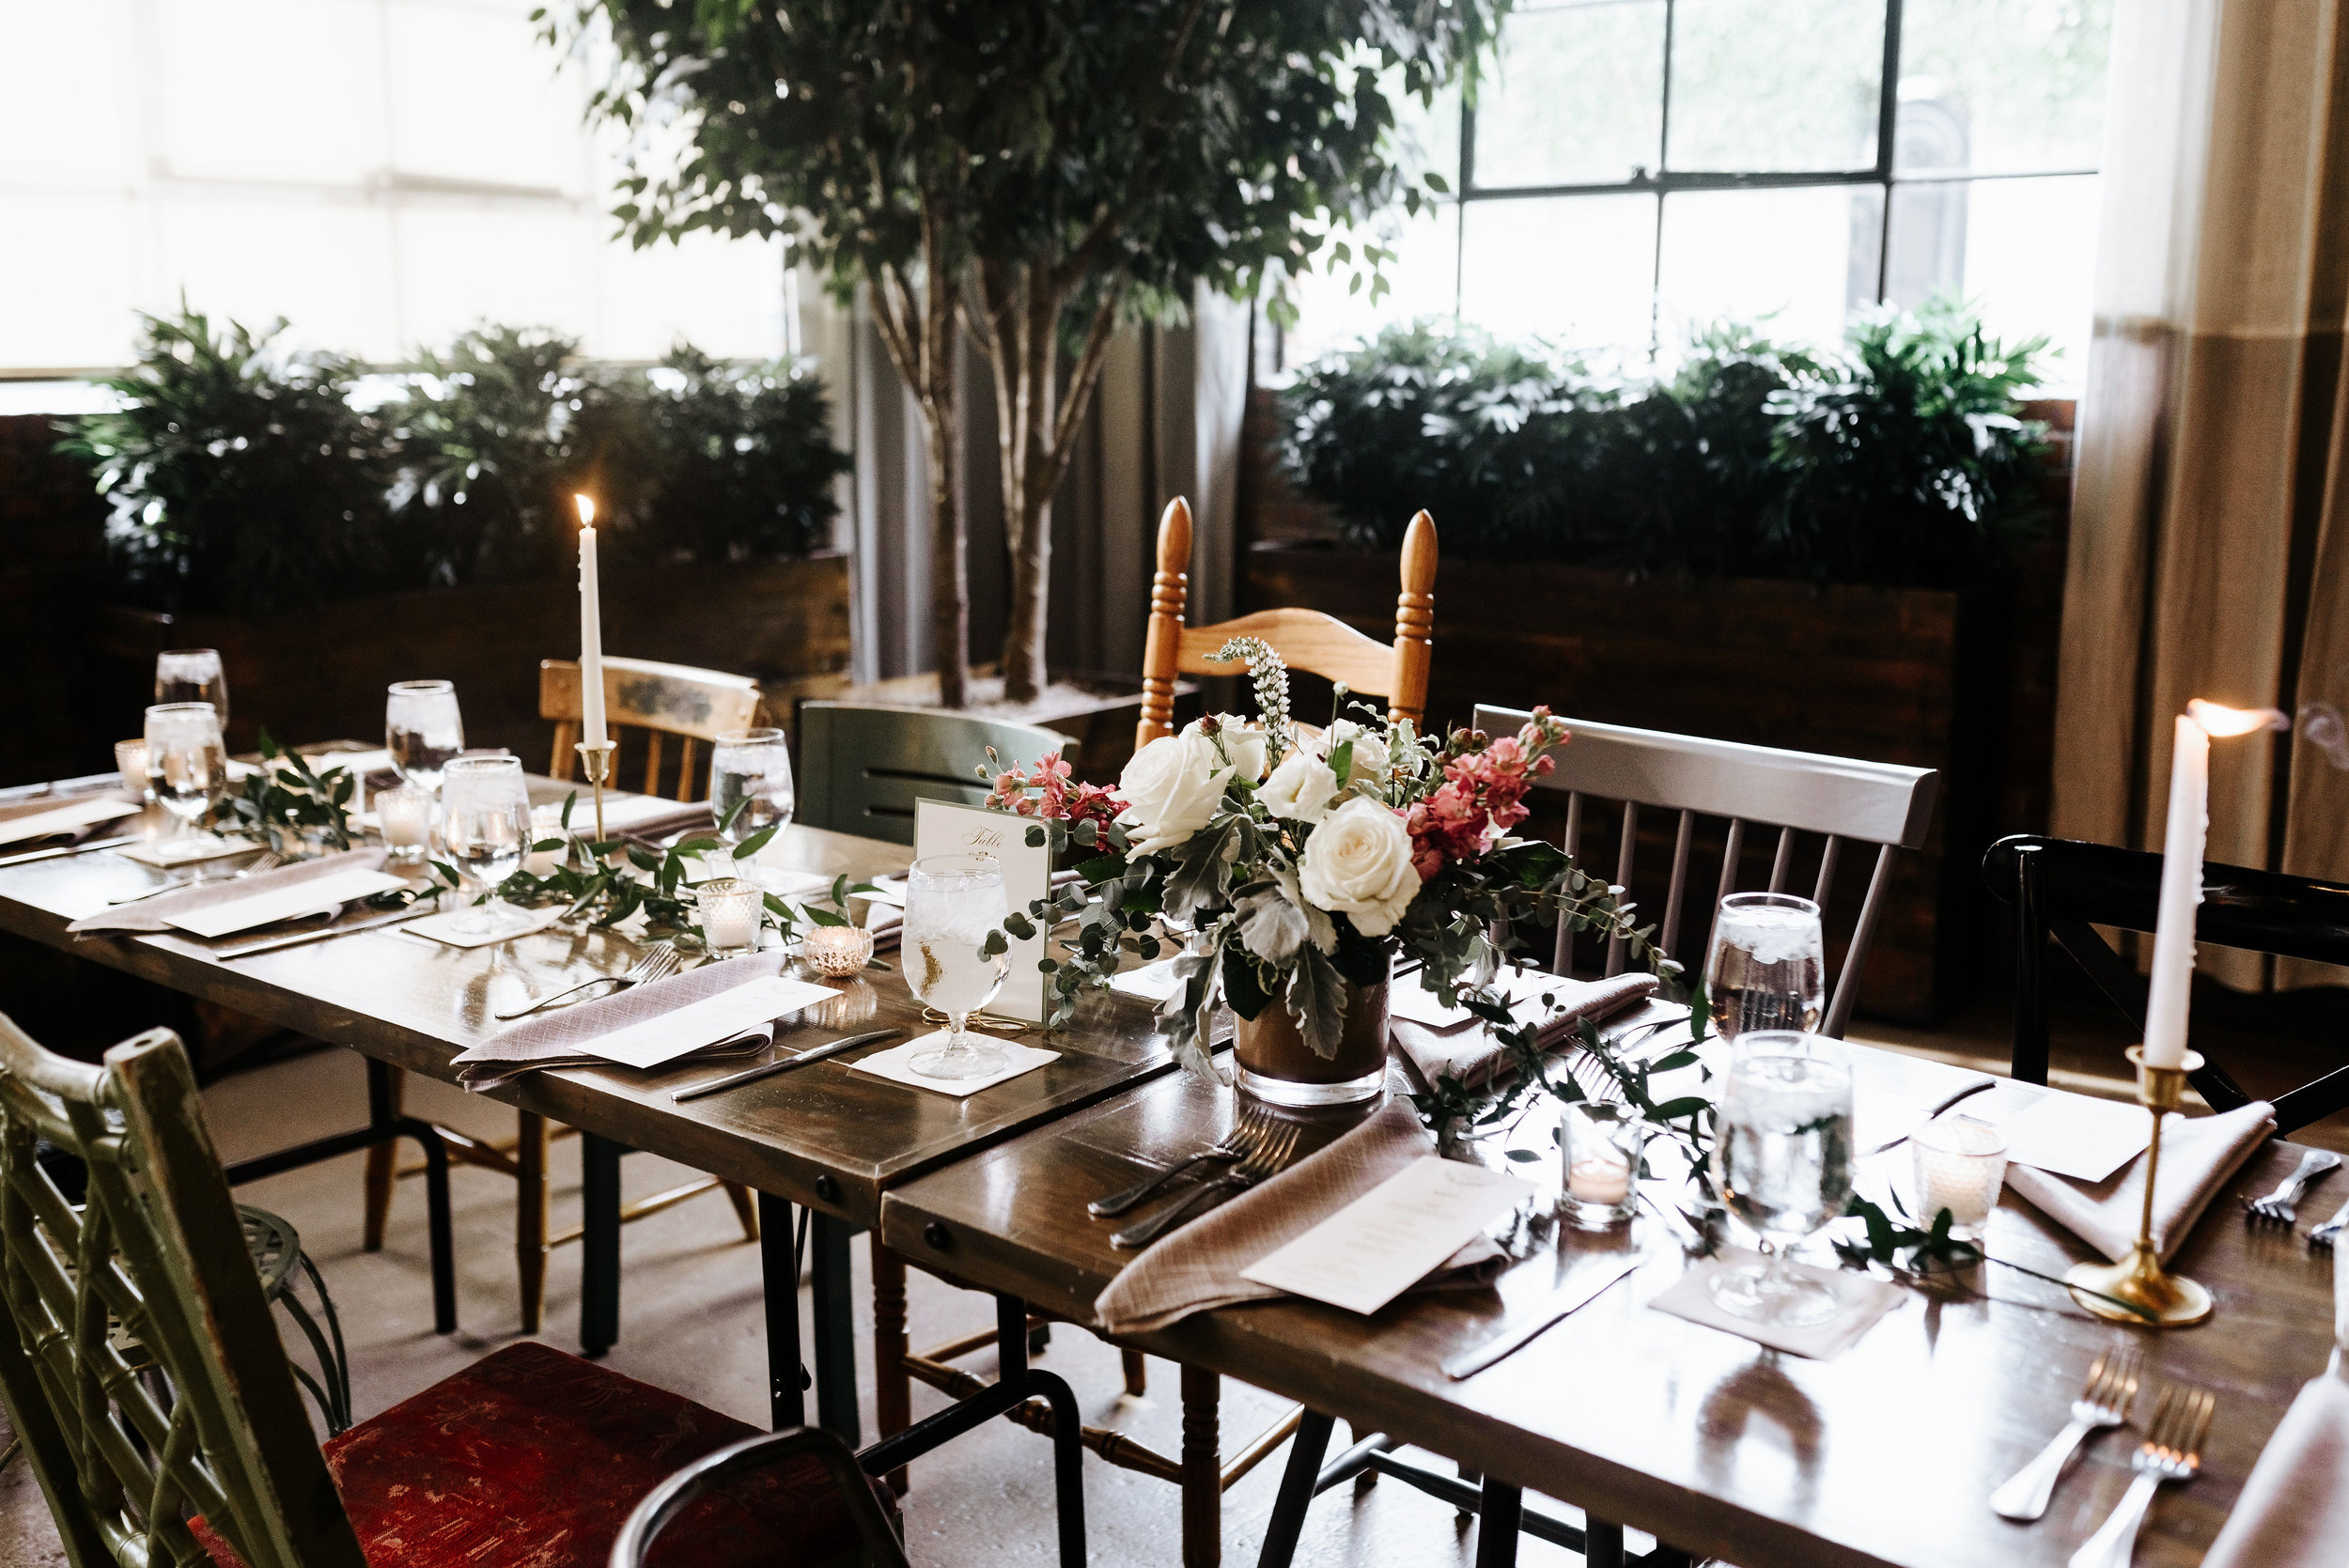 Liz_Cody_Wedding_Harper__Fowlkes_House_Soho_South_Cafe_Savannah_Georgia_Photography_by_V_1009.jpg